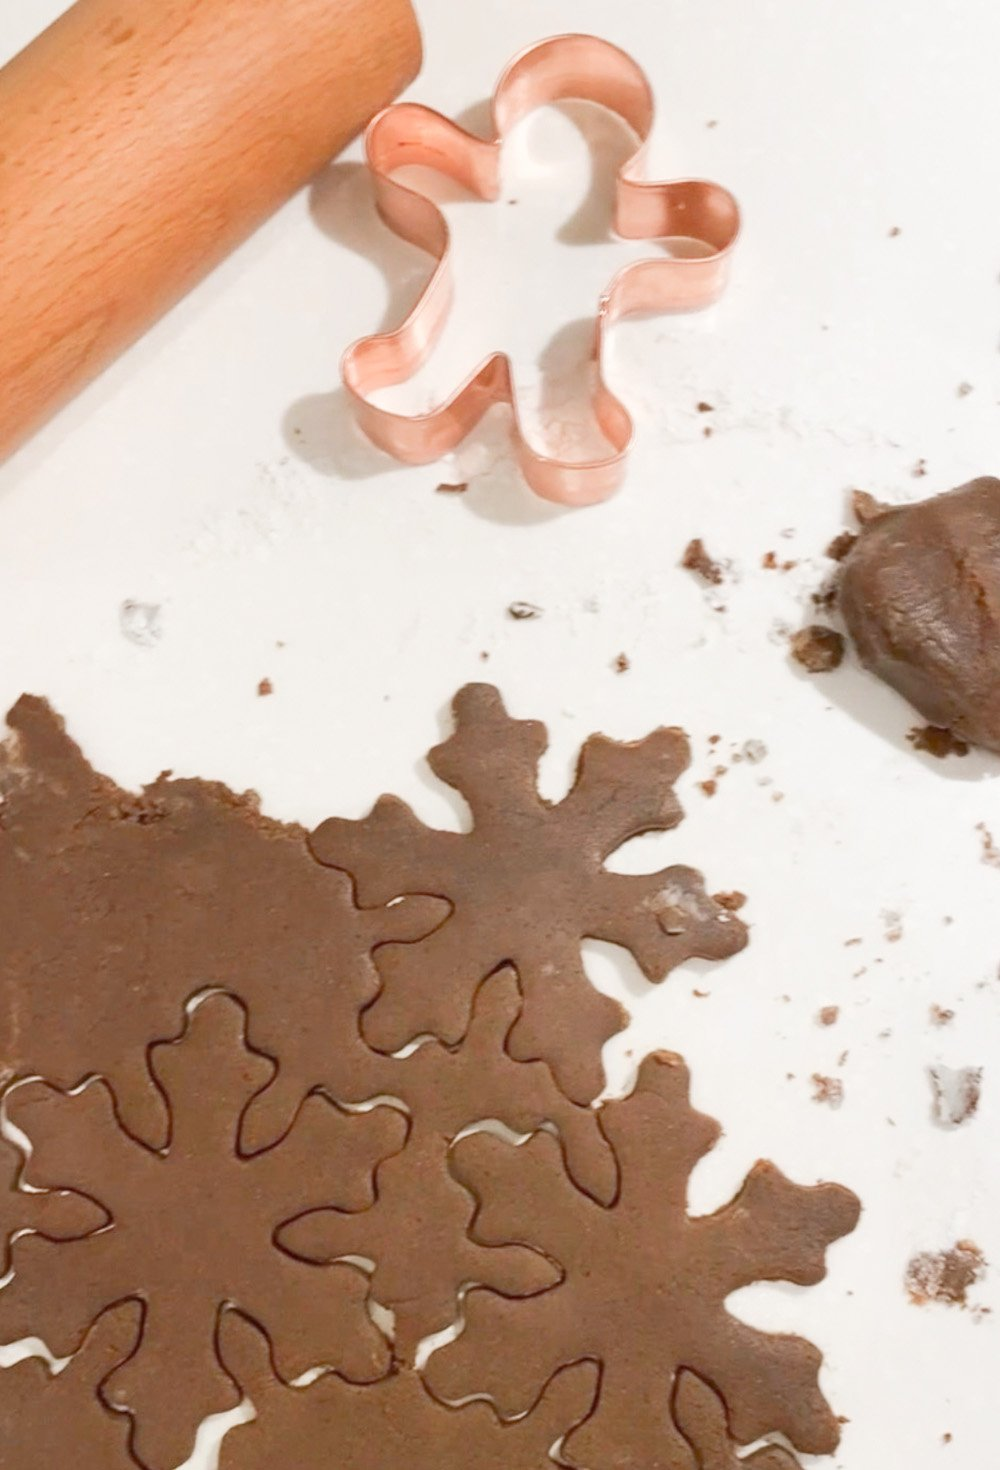 Cutting out gingerbread cookies recipe